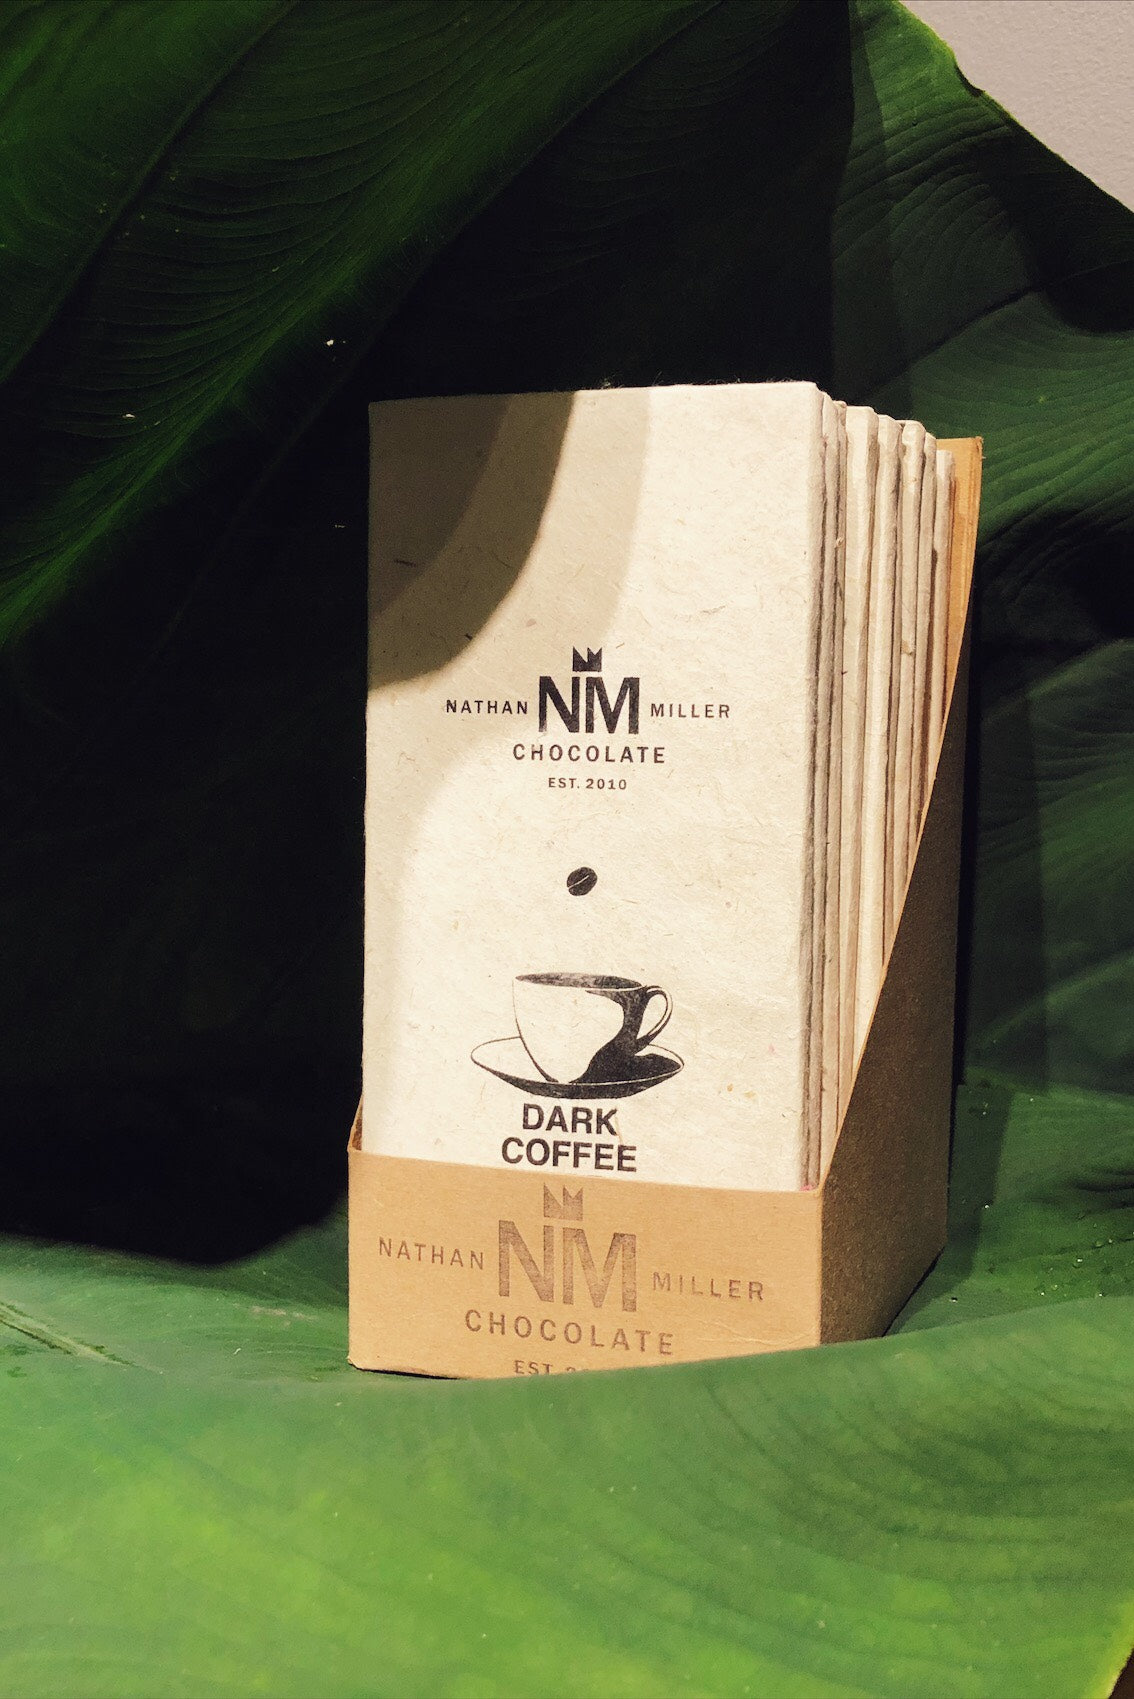 Dark Coffee Chocolate By Nathan Miller Chocolate 12 bar case